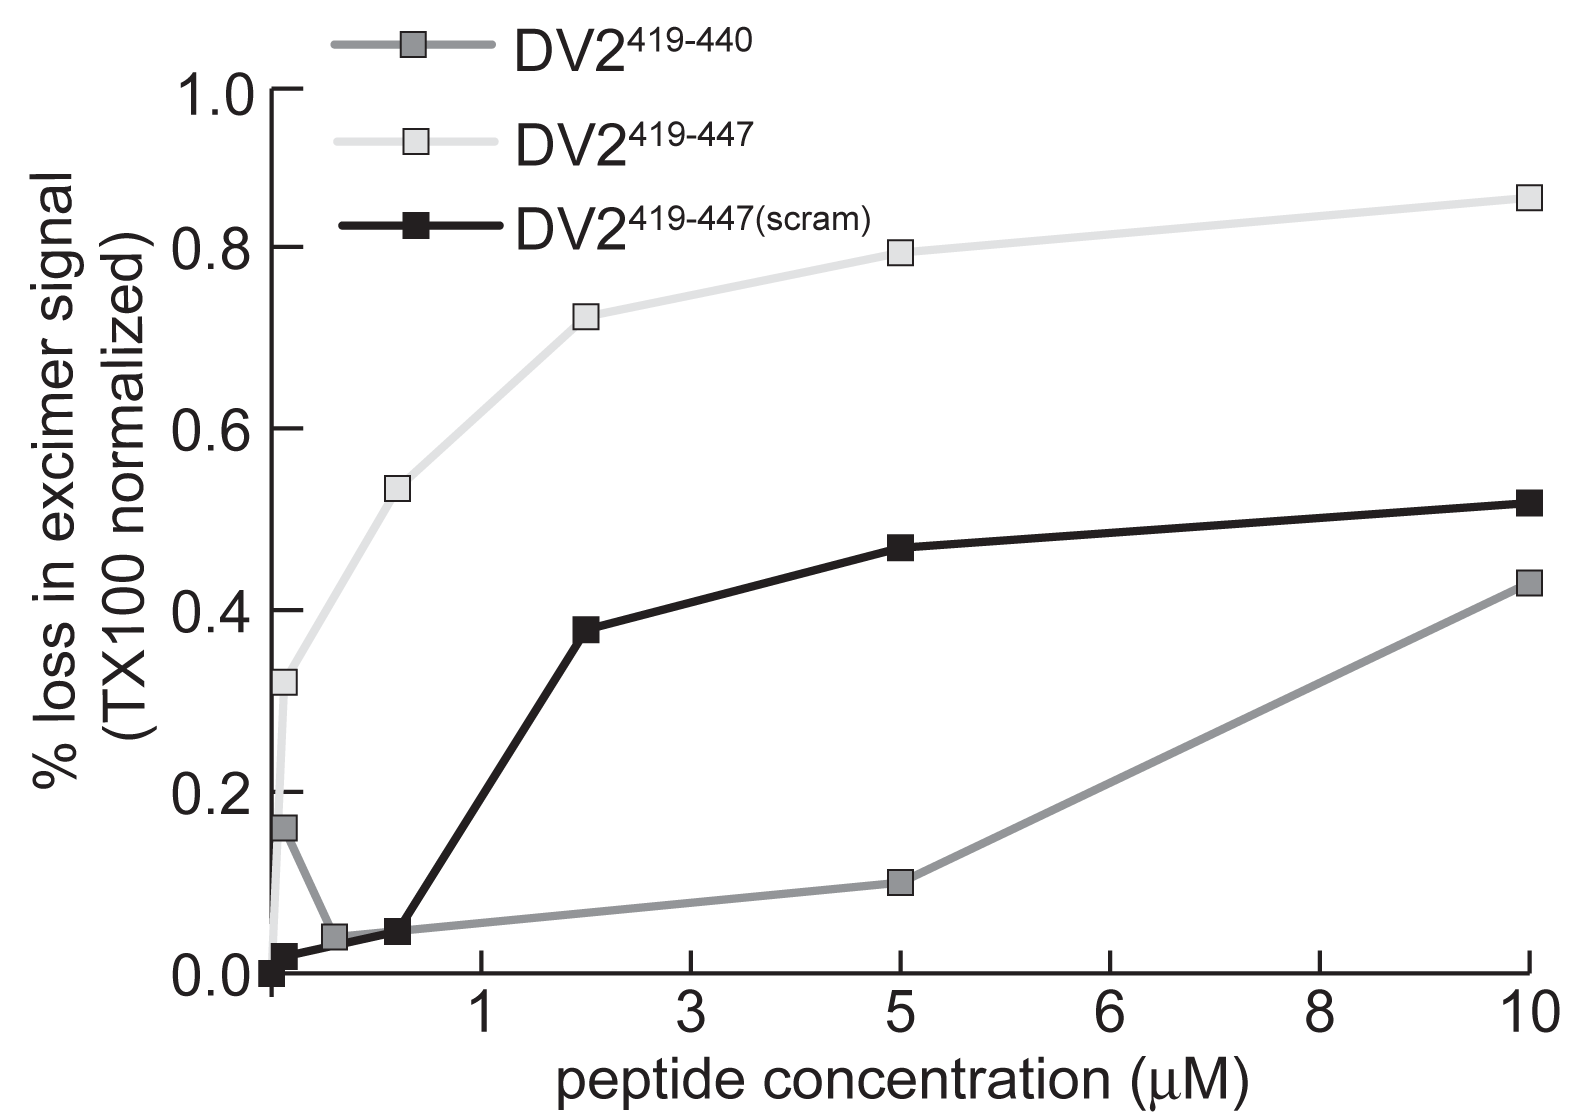 Stem peptides interact with the dengue virus membrane.